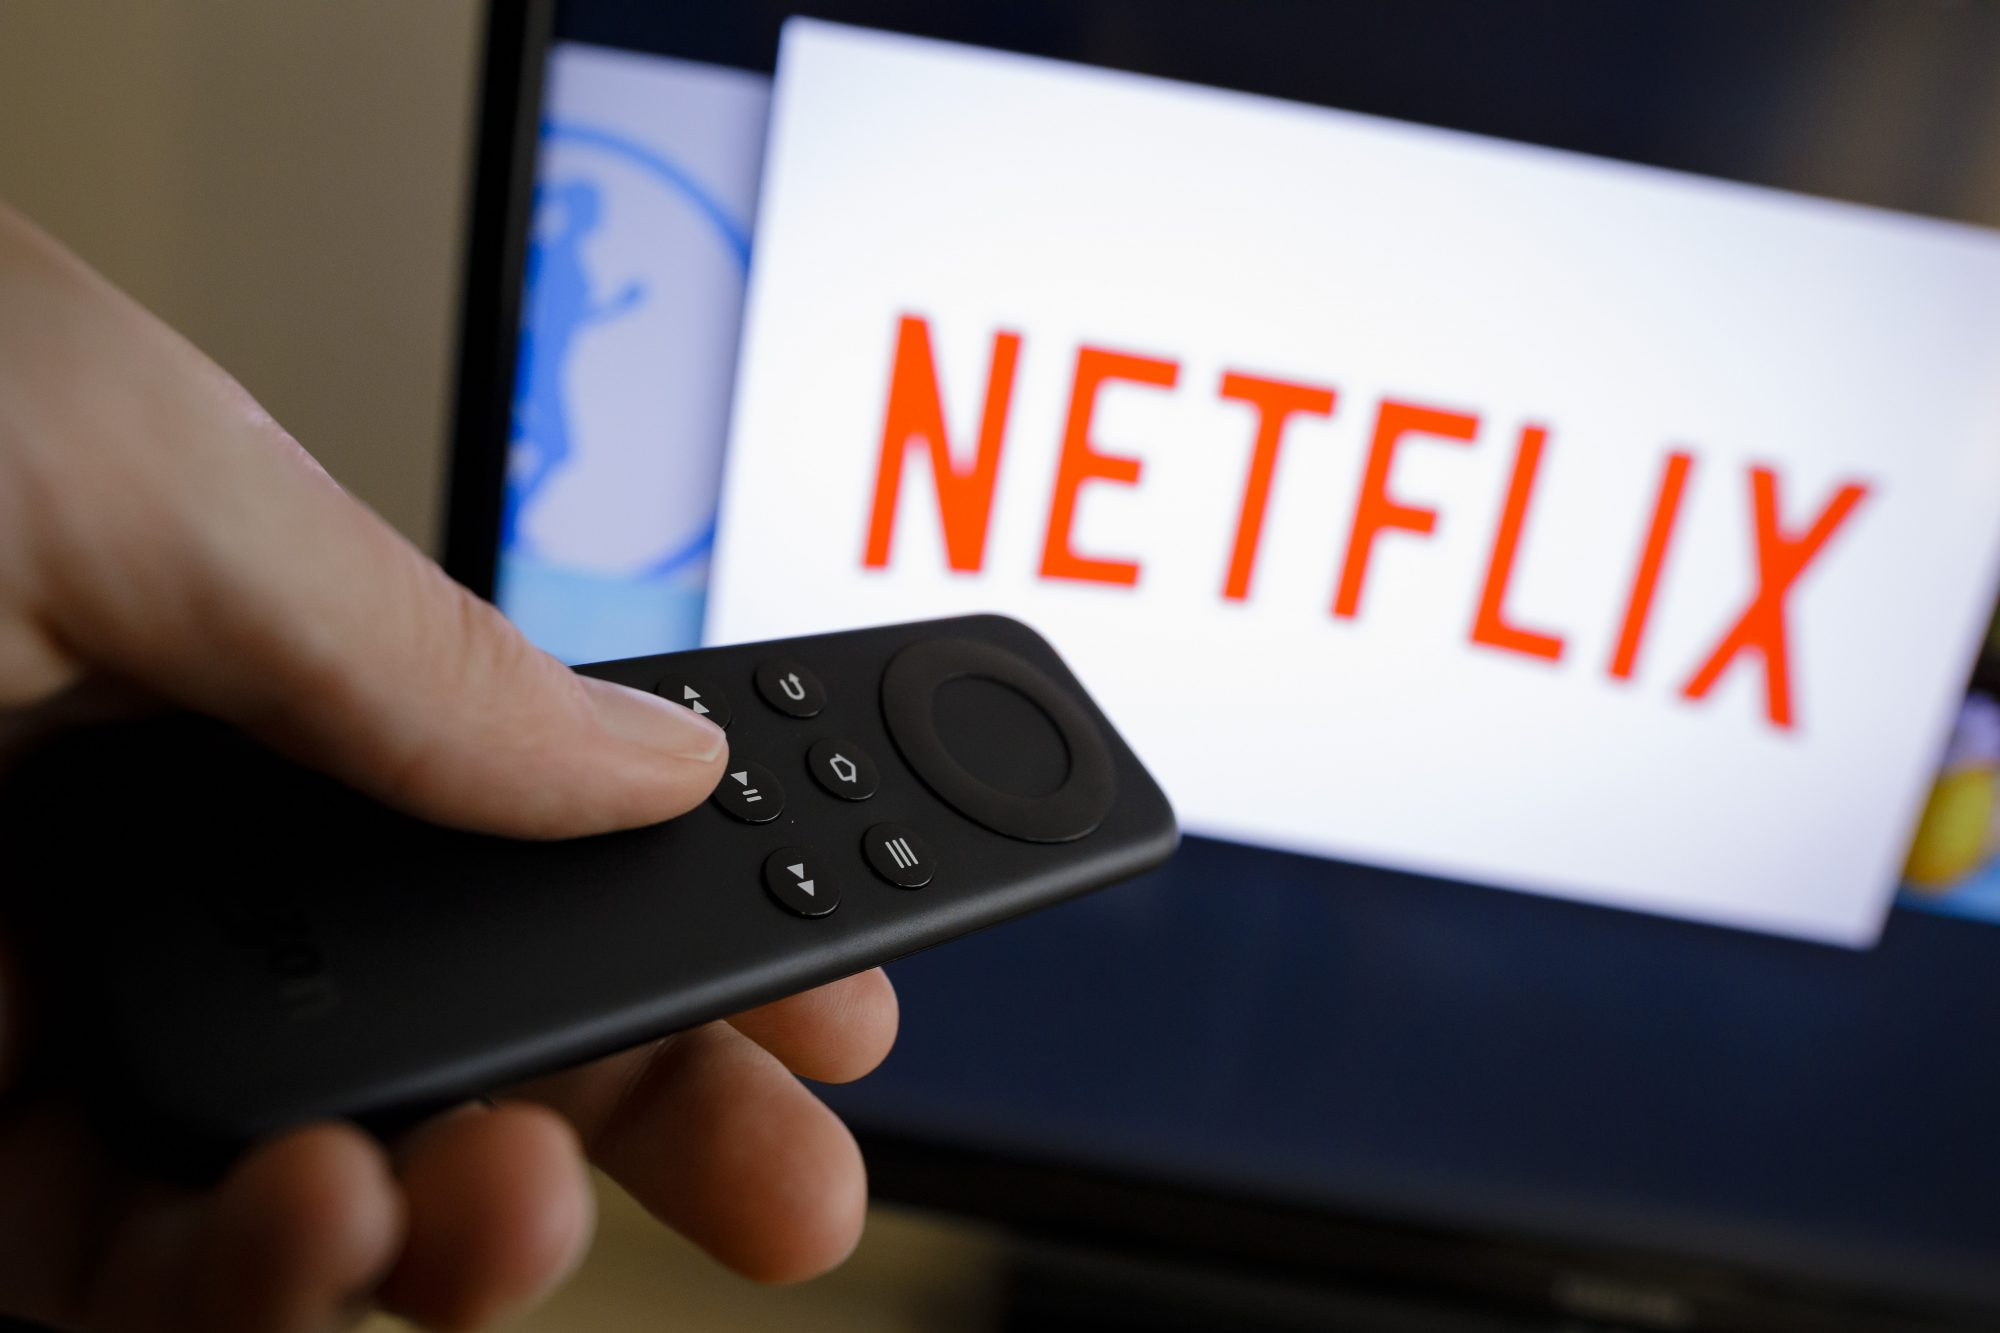 Netflix screen and remote